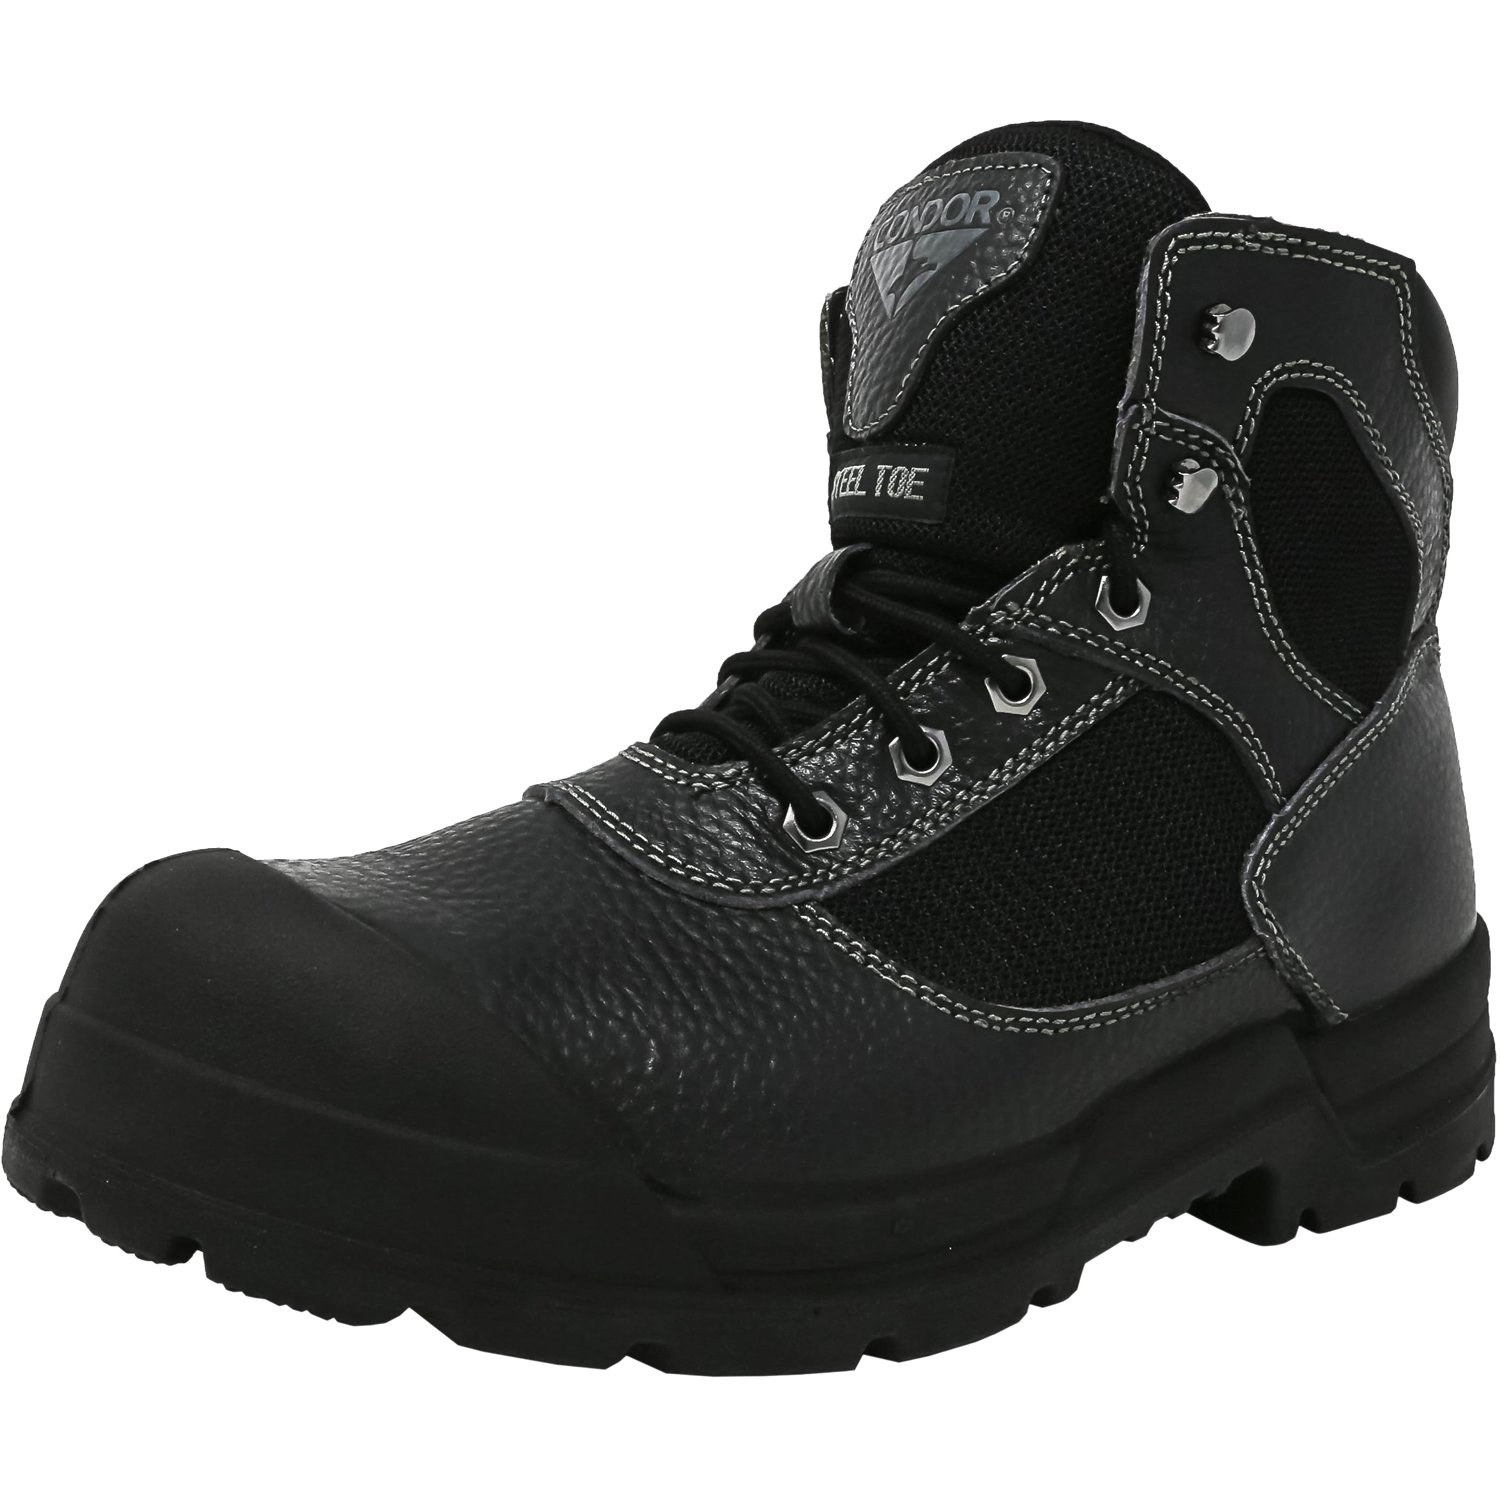 Condor Men's 6 Inch Steel Toe Work Boot Black High-Top Leather - 9M